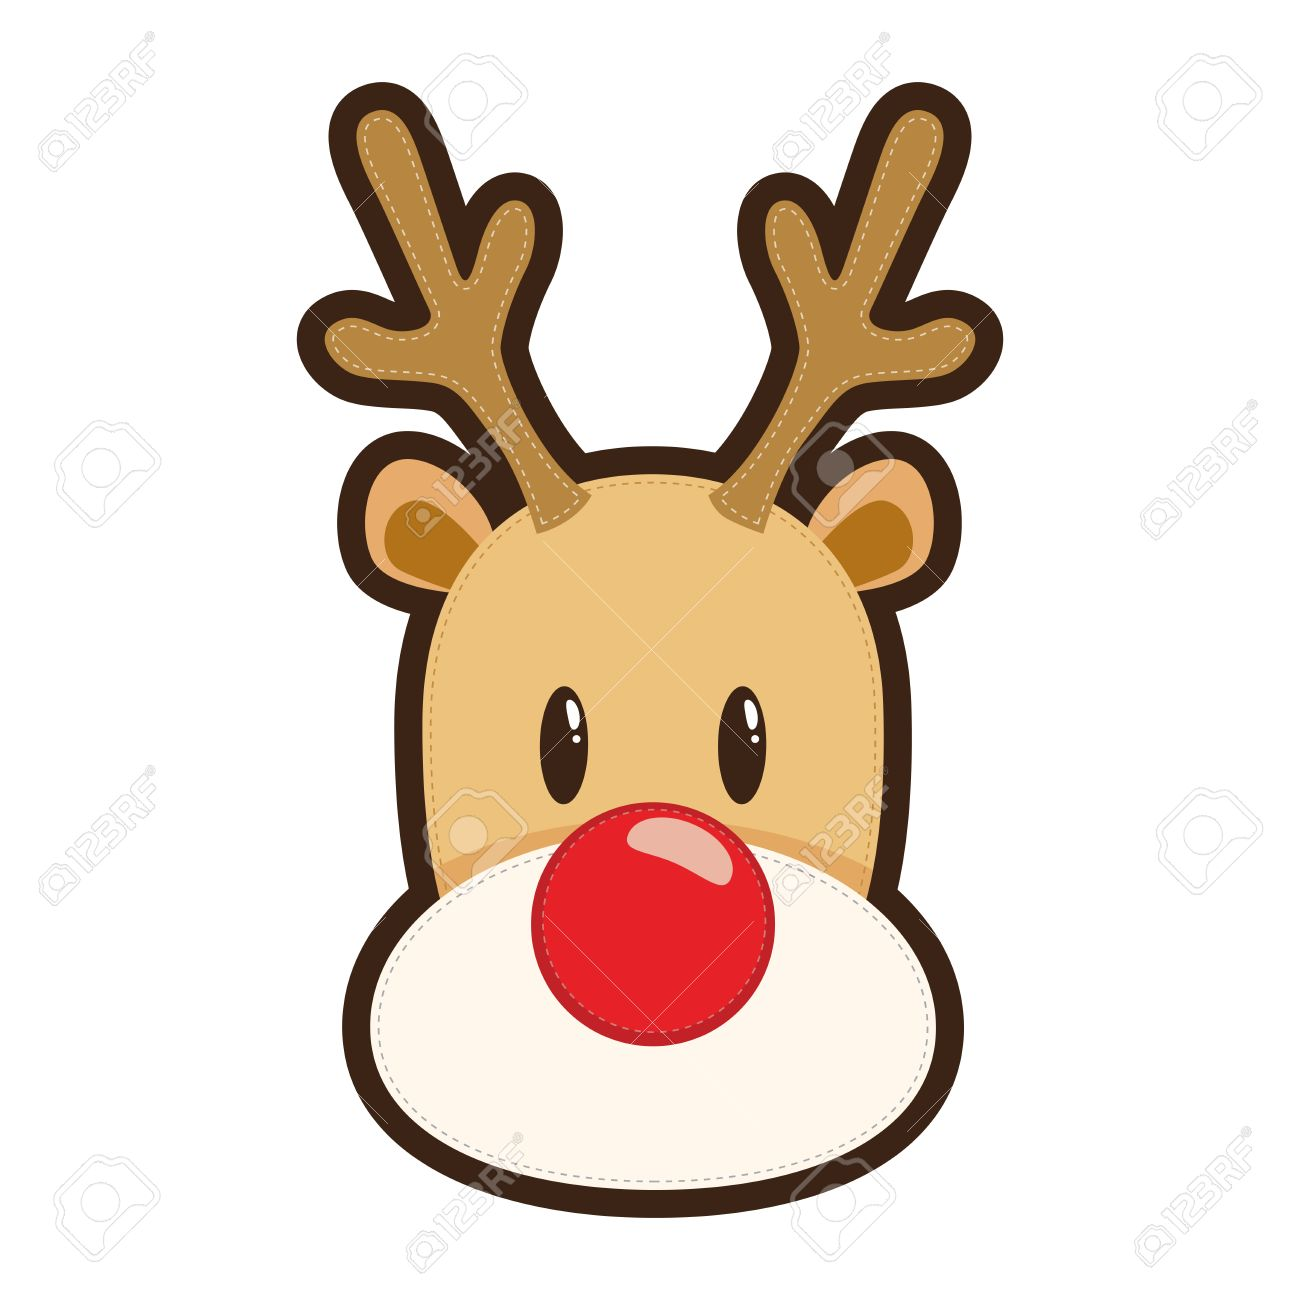 Rudolf Red Nosed Reindeer Royalty Free Cliparts Vectors And Stock Illustration Image 23981462,Baby Drawer Organizer Ikea